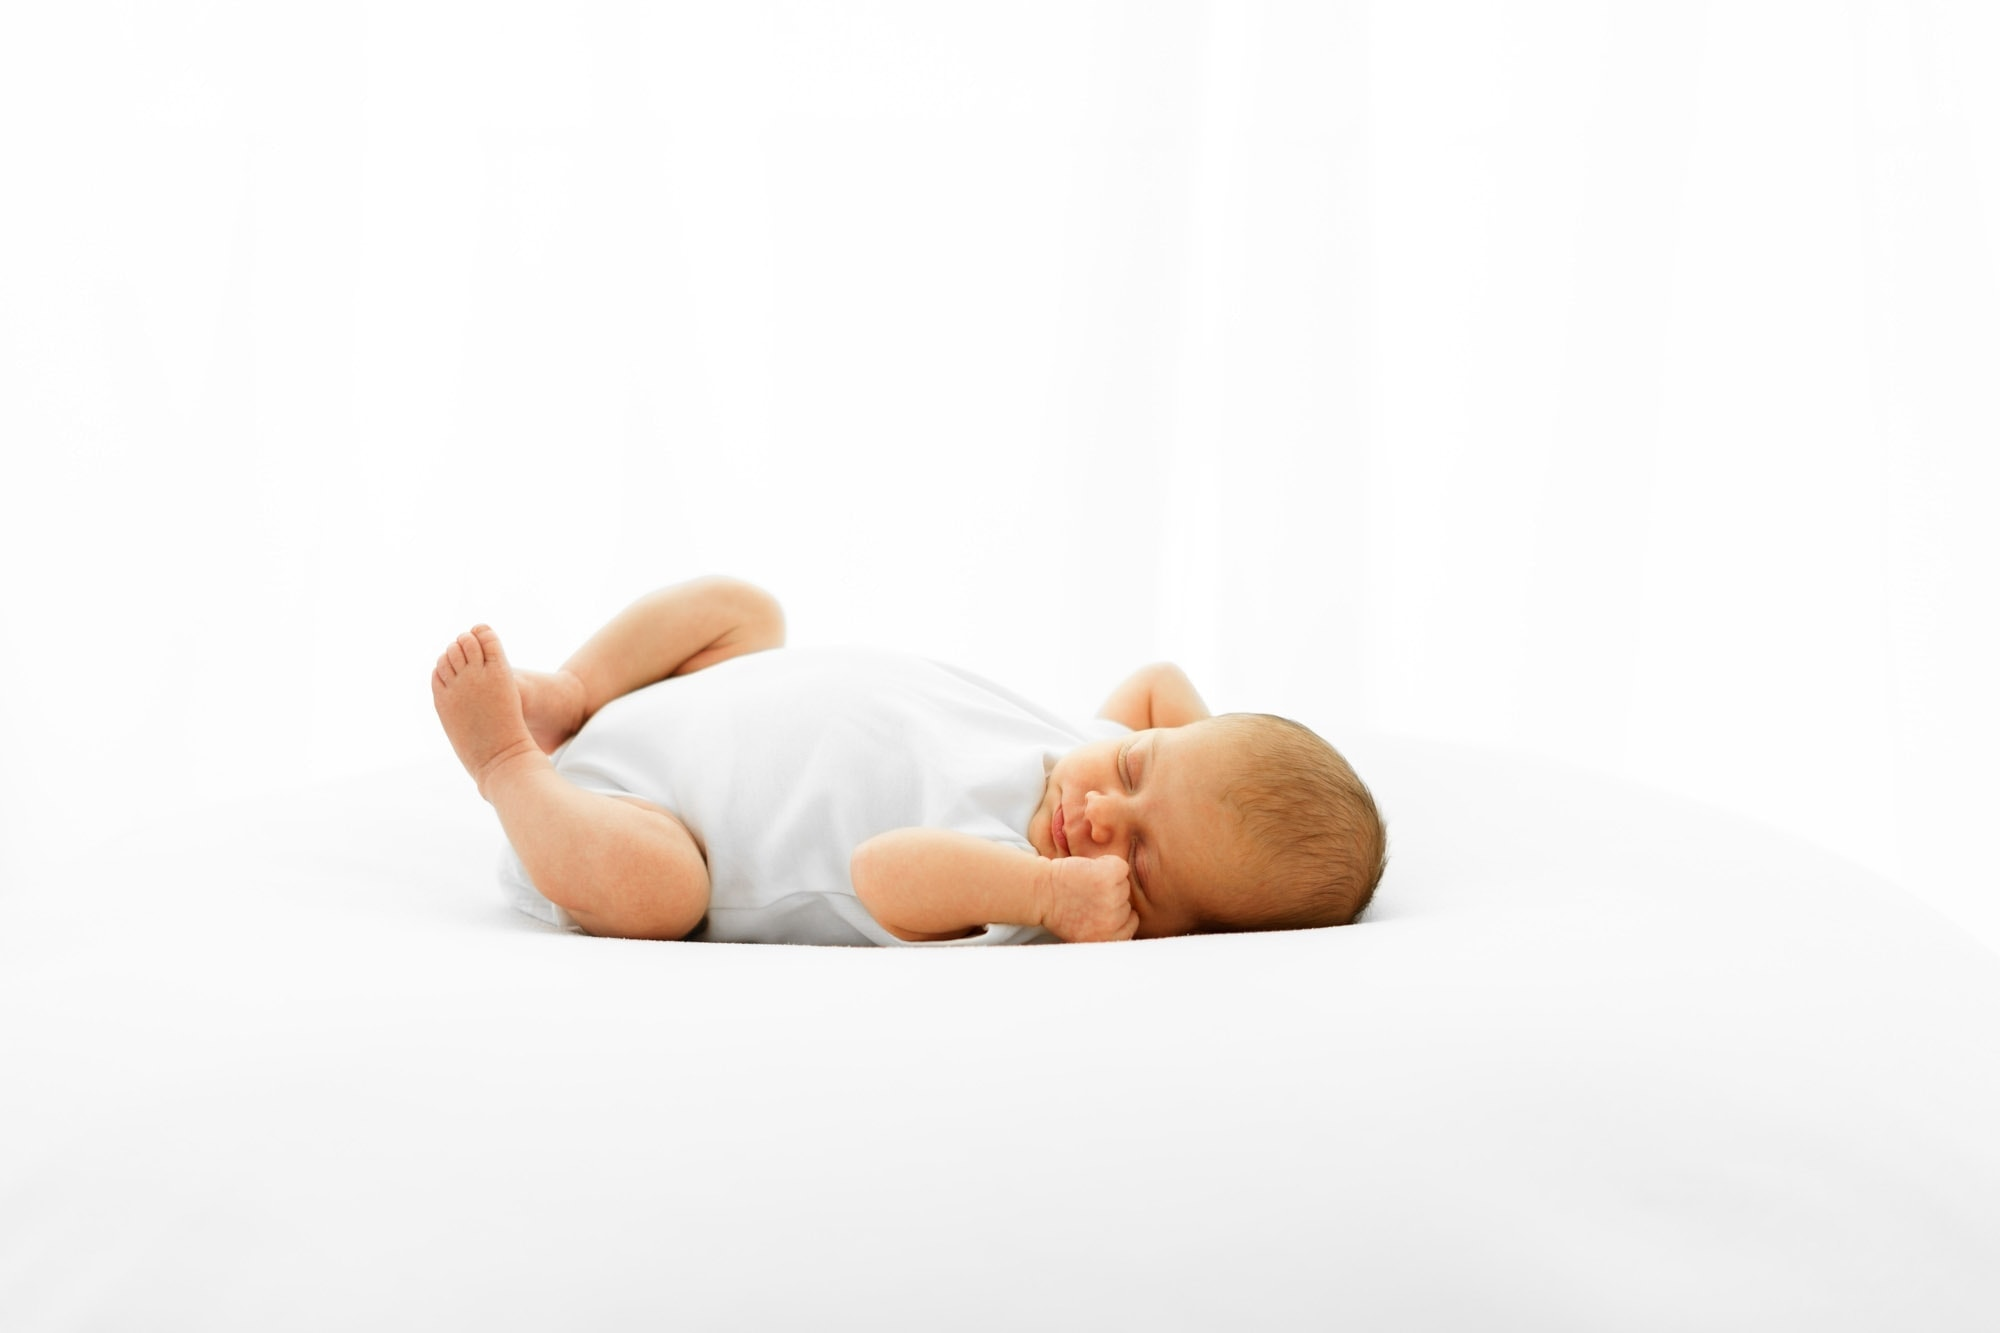 baby photographed naturally during session with norwich baby photographerw